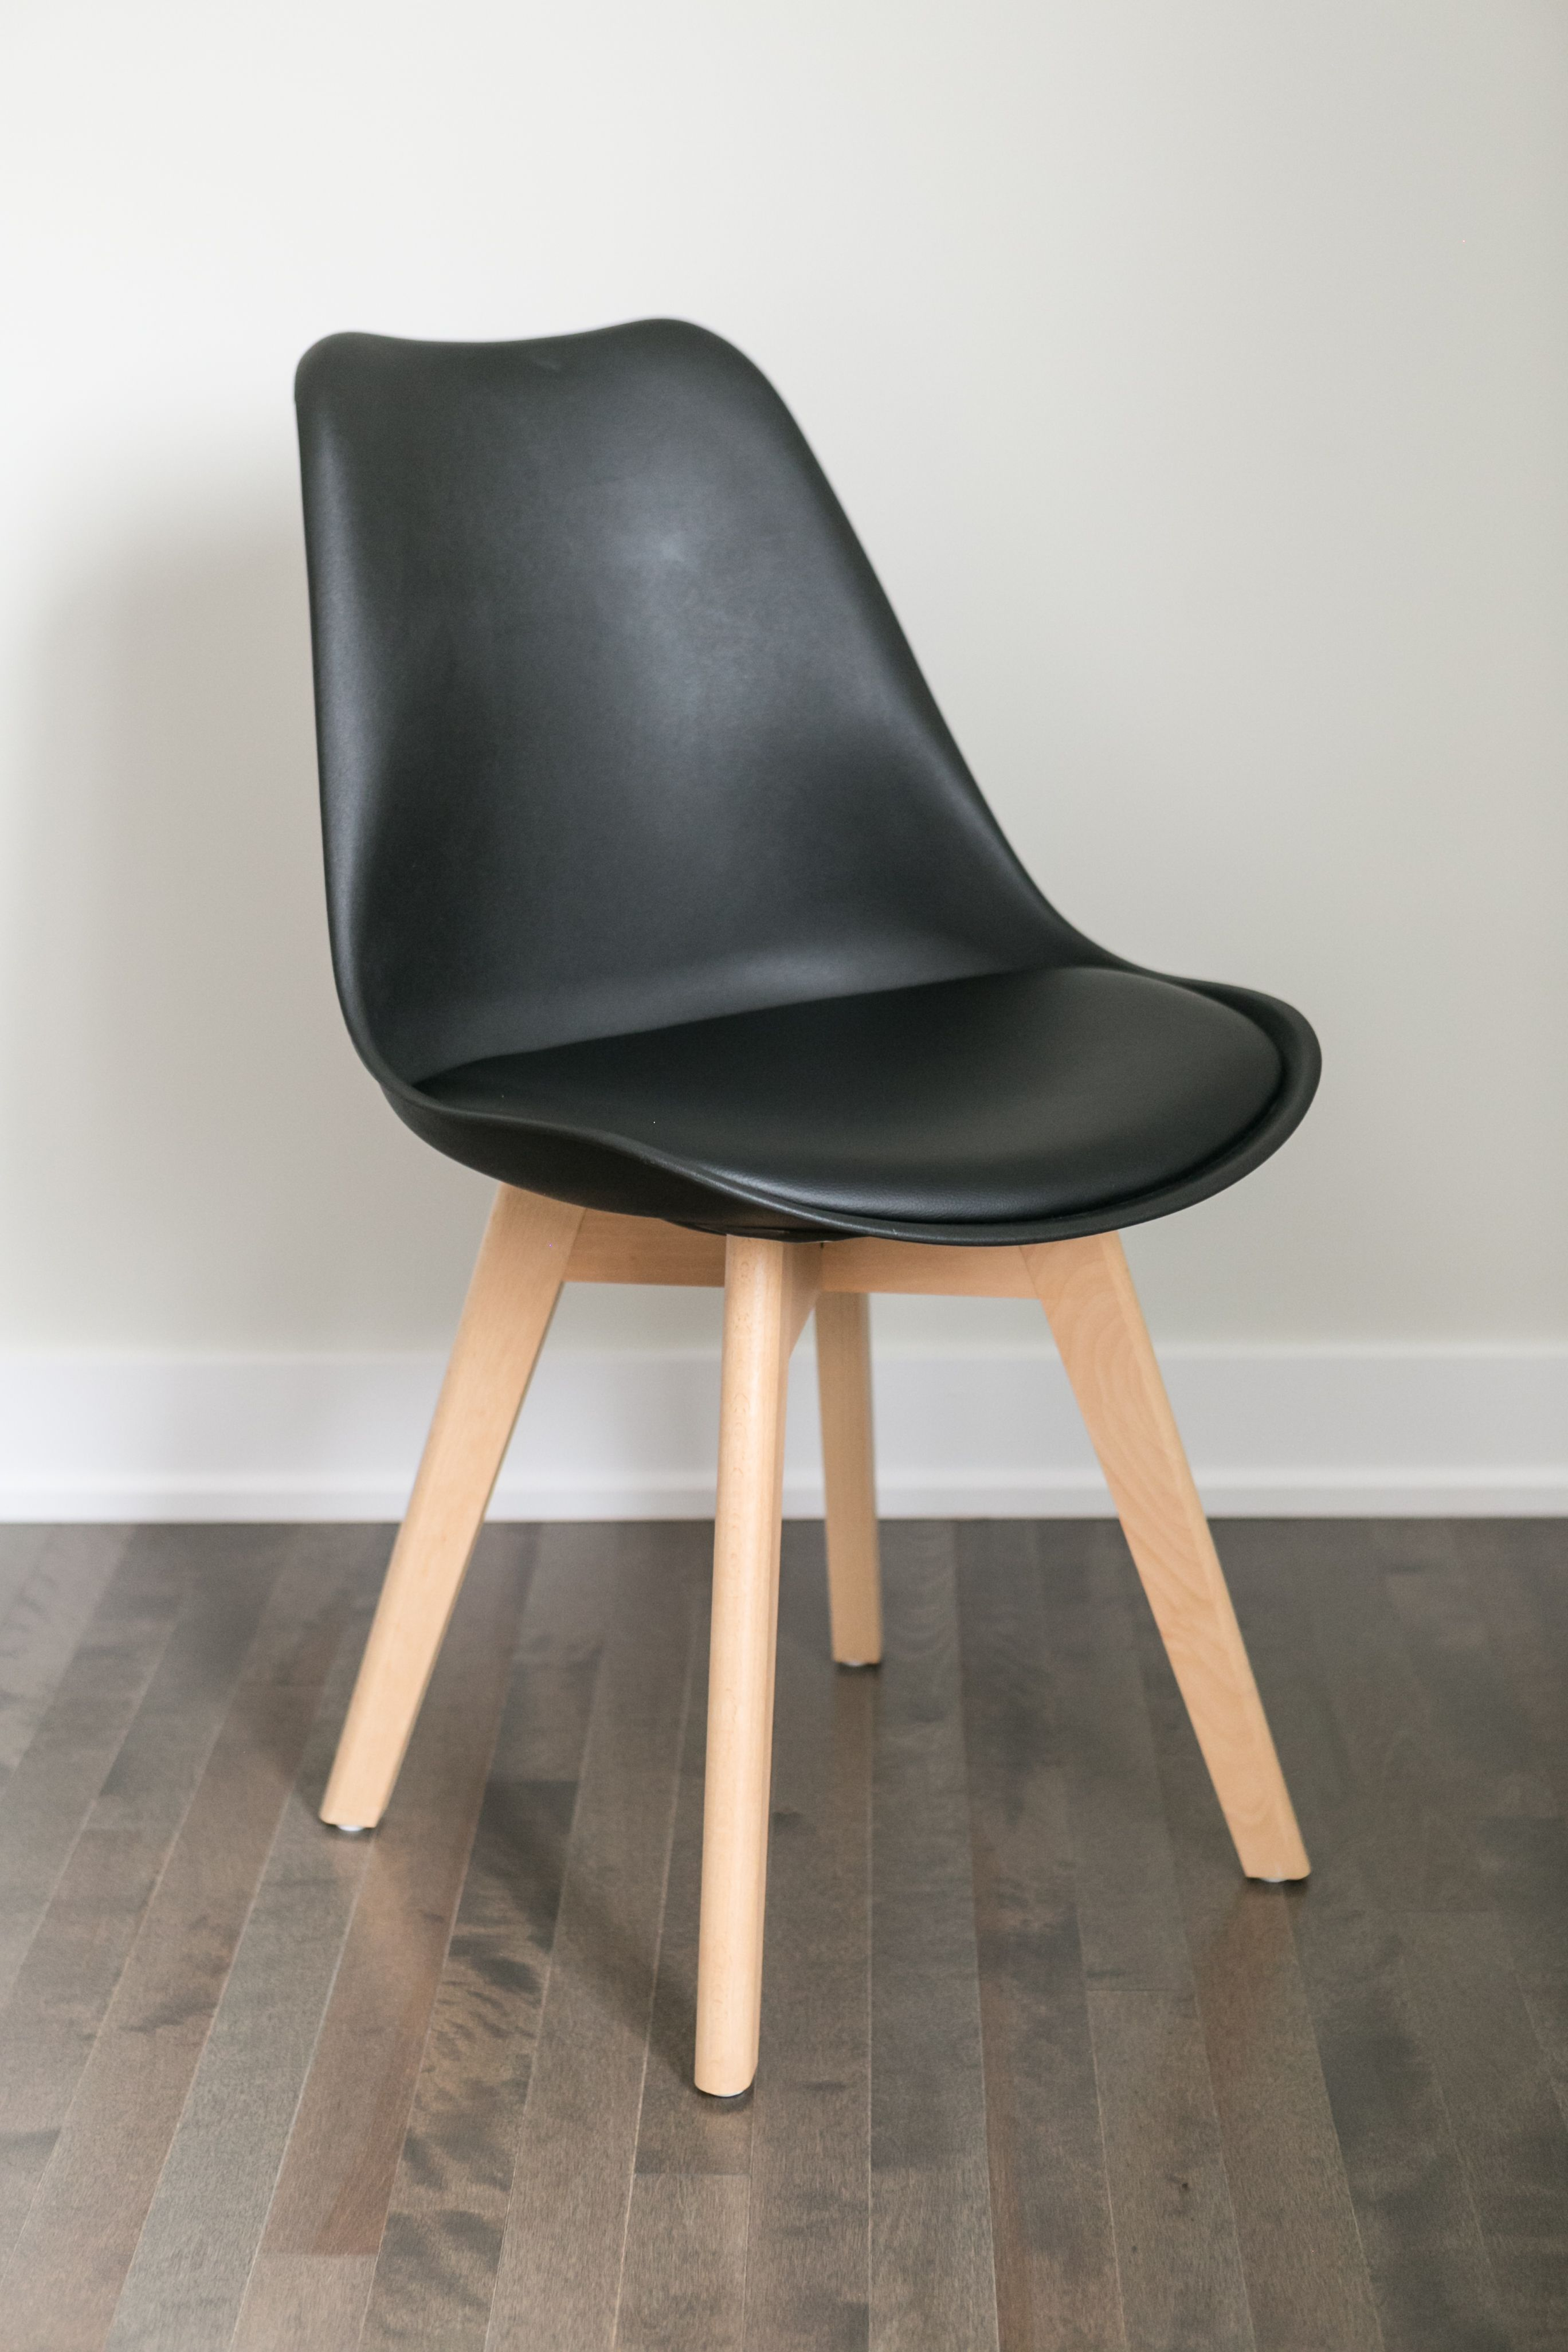 Chaise Scandinave Noire Eames Chair Furniture Chair